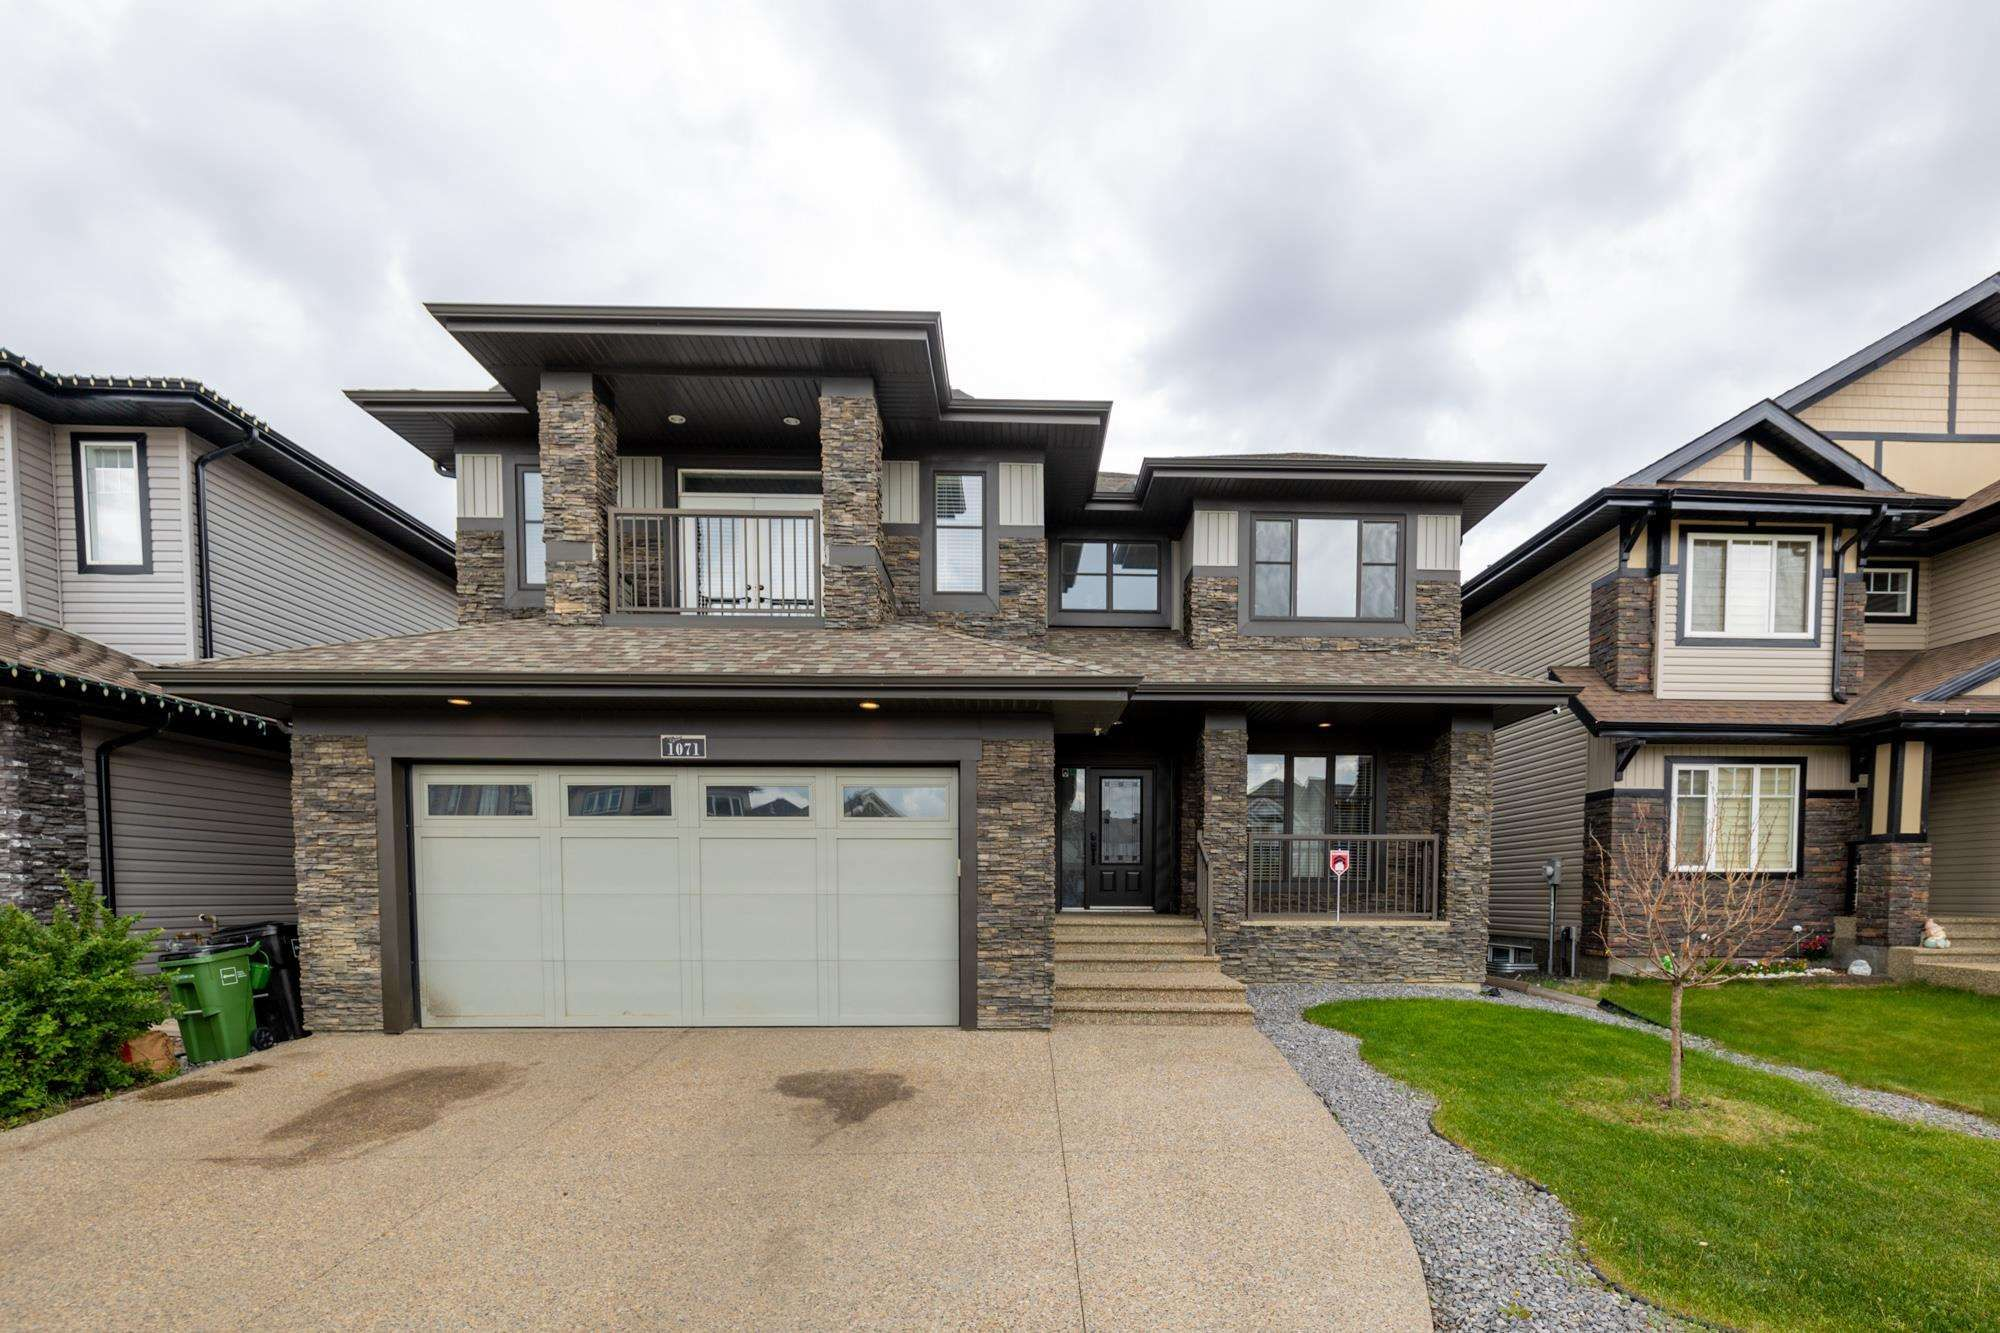 Main Photo: 1071 CONNELLY Way SW in Edmonton: Zone 55 House for sale : MLS®# E4248685